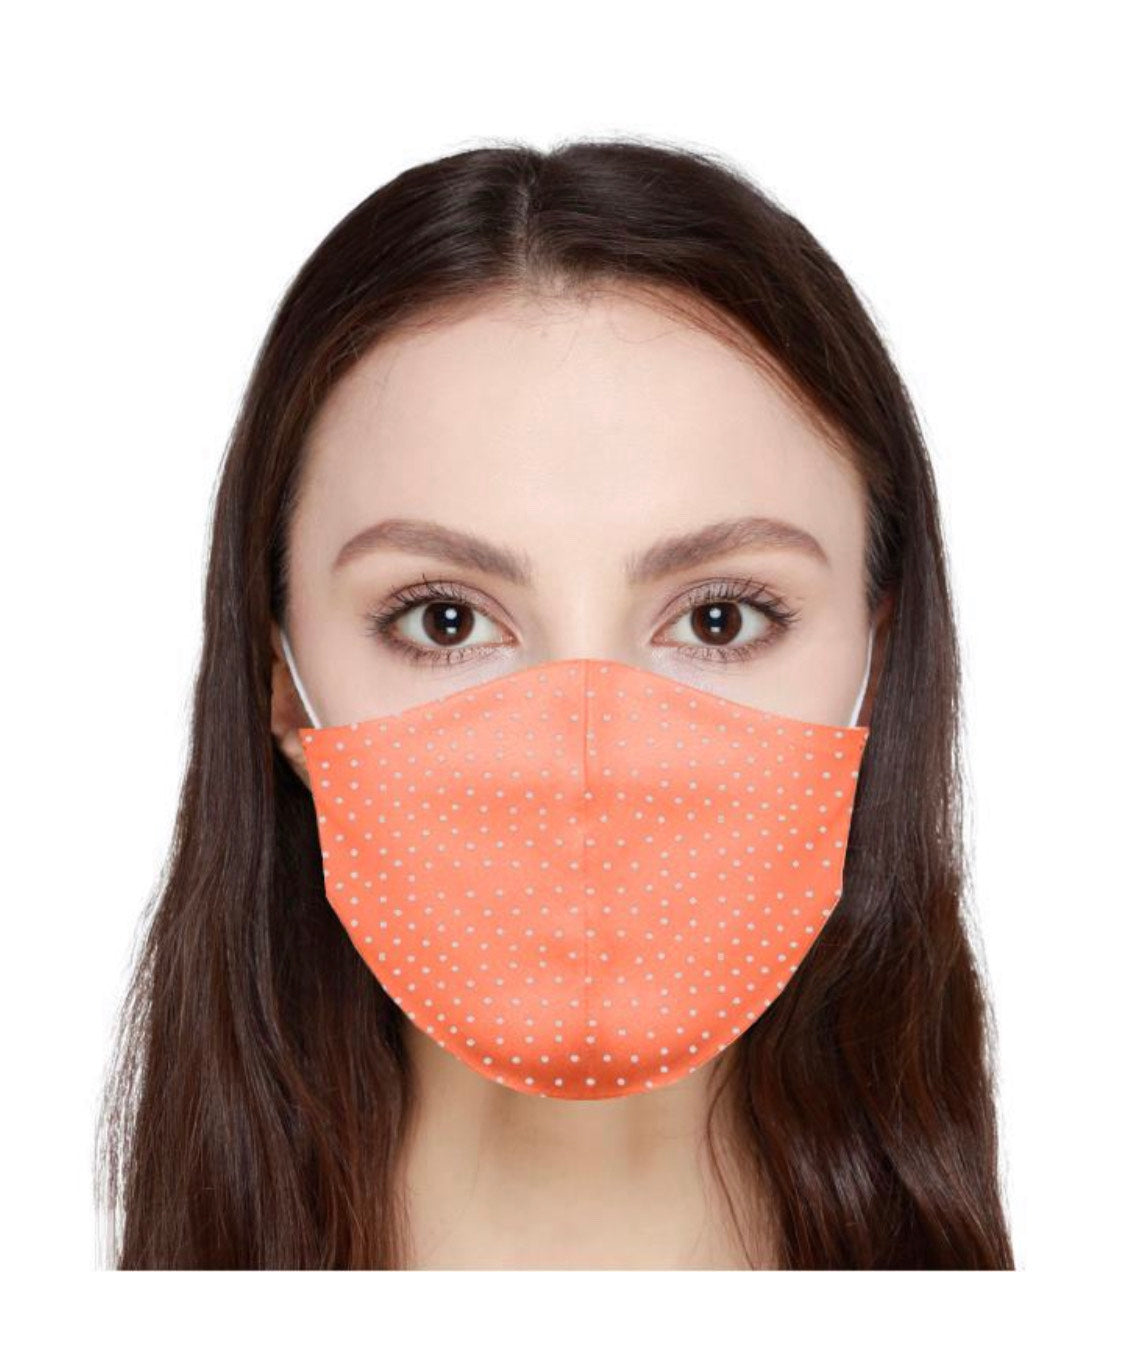 Women's Cloth Mask 3-Pack